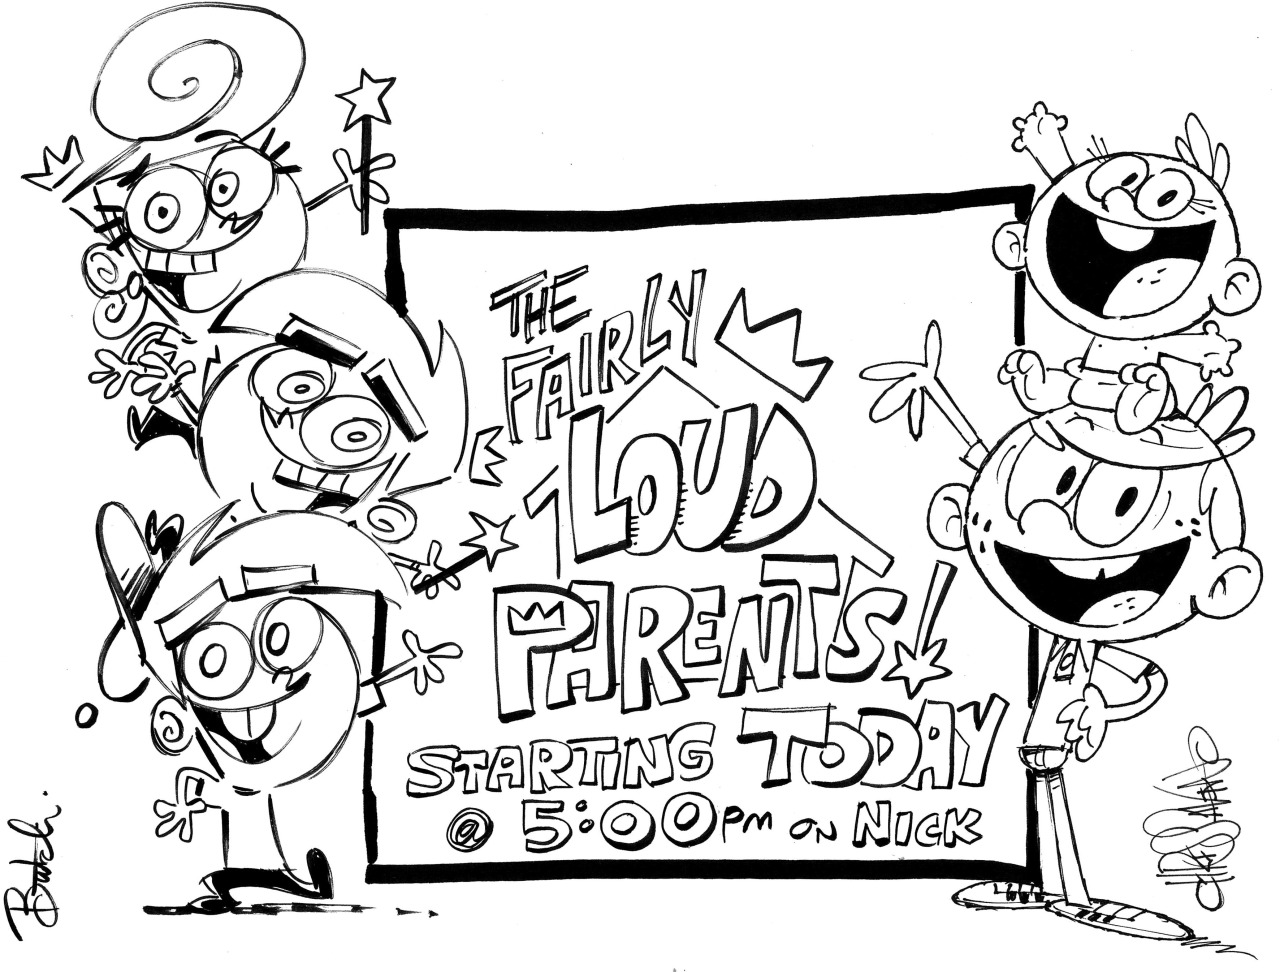 The Fairly Loud Parents Fop Loud House Crossover